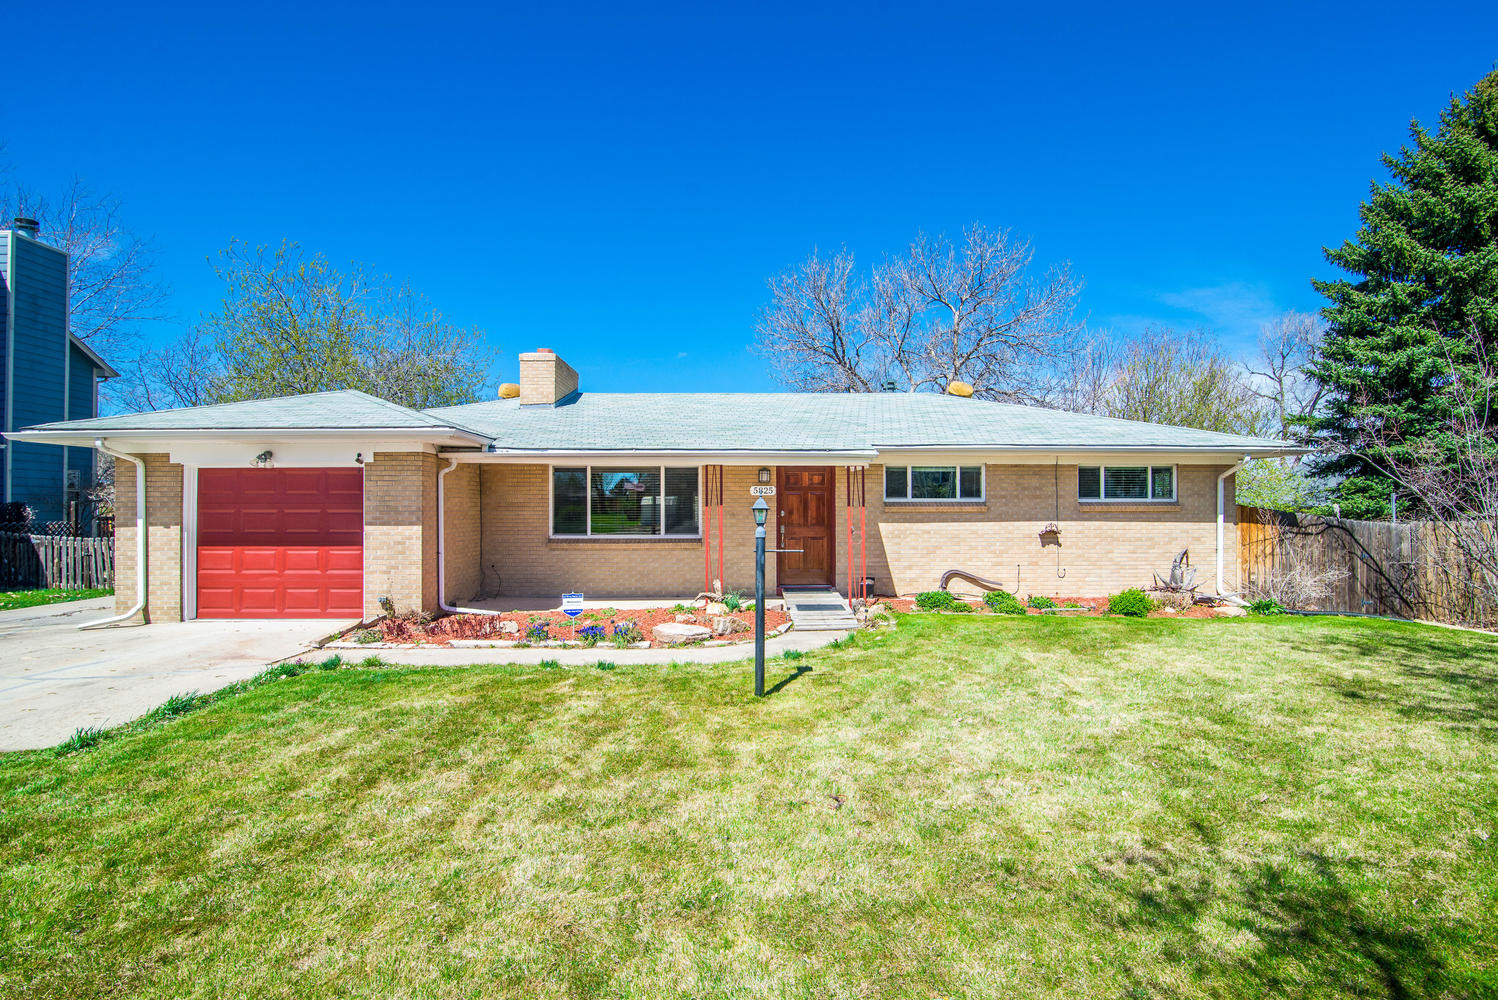 Single Family Home for Sale at This home has it all and then some! 5825 West 33rd Avenue Wheat Ridge, Colorado, 80212 United States